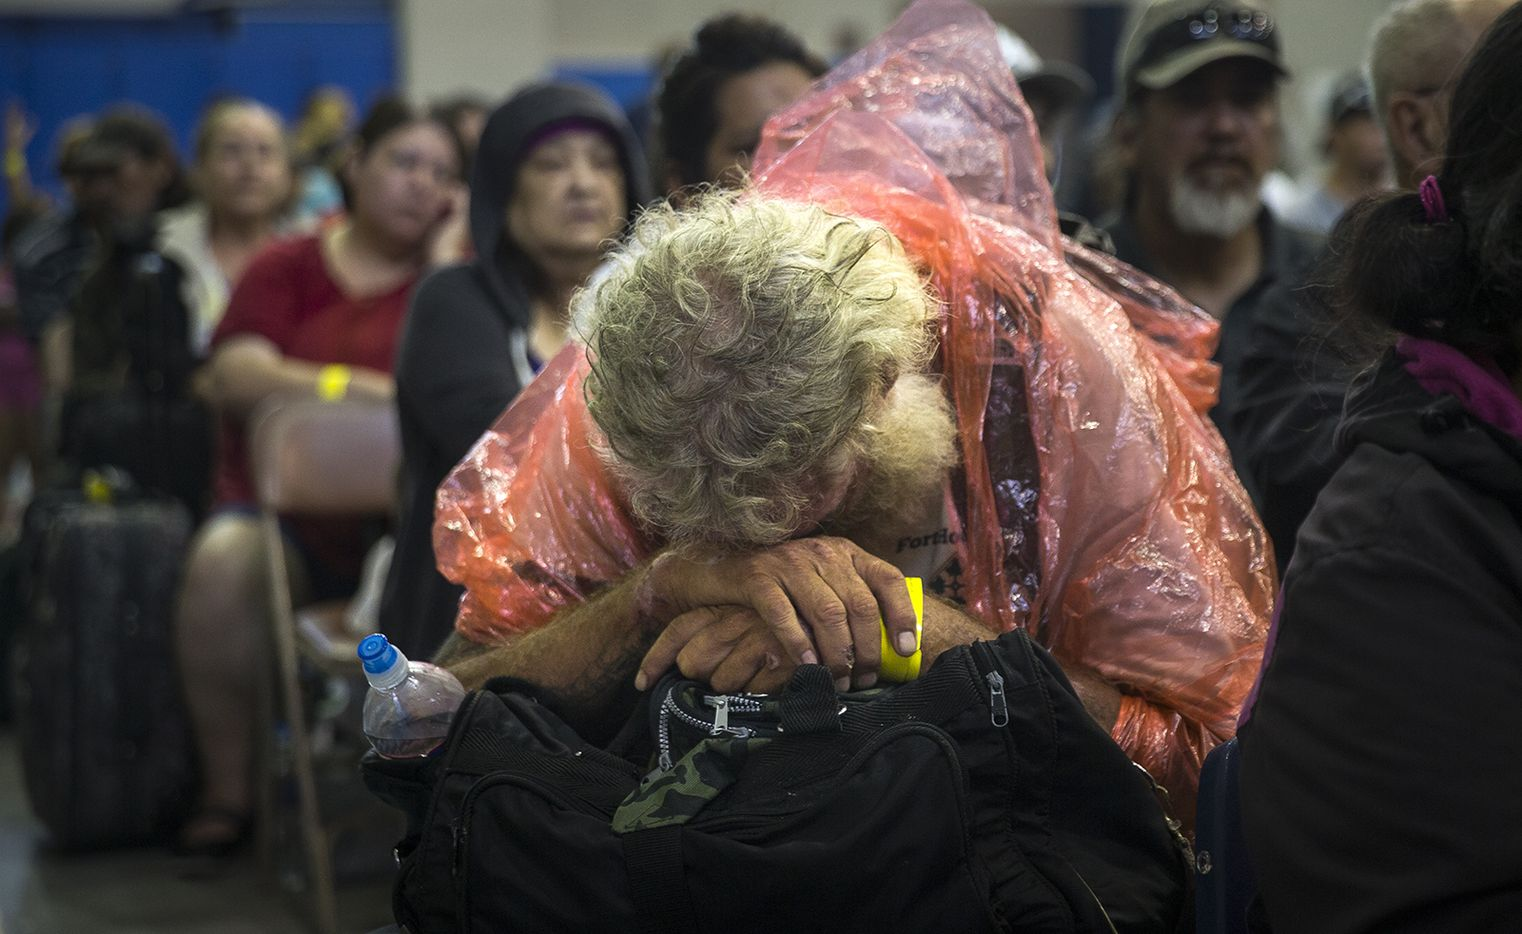 A man rests while waiting to board a bus headed for San Antonio at an evacuation center in Corpus Christi, Texas on Friday, Aug. 25, 2017. Hundreds of residents of the Corpus Christi area boarded buses Friday to be transported to a shelter in San Antonio as Hurricane Harvey is expected to make landfall on the Texas coast Friday night or early Saturday morning.